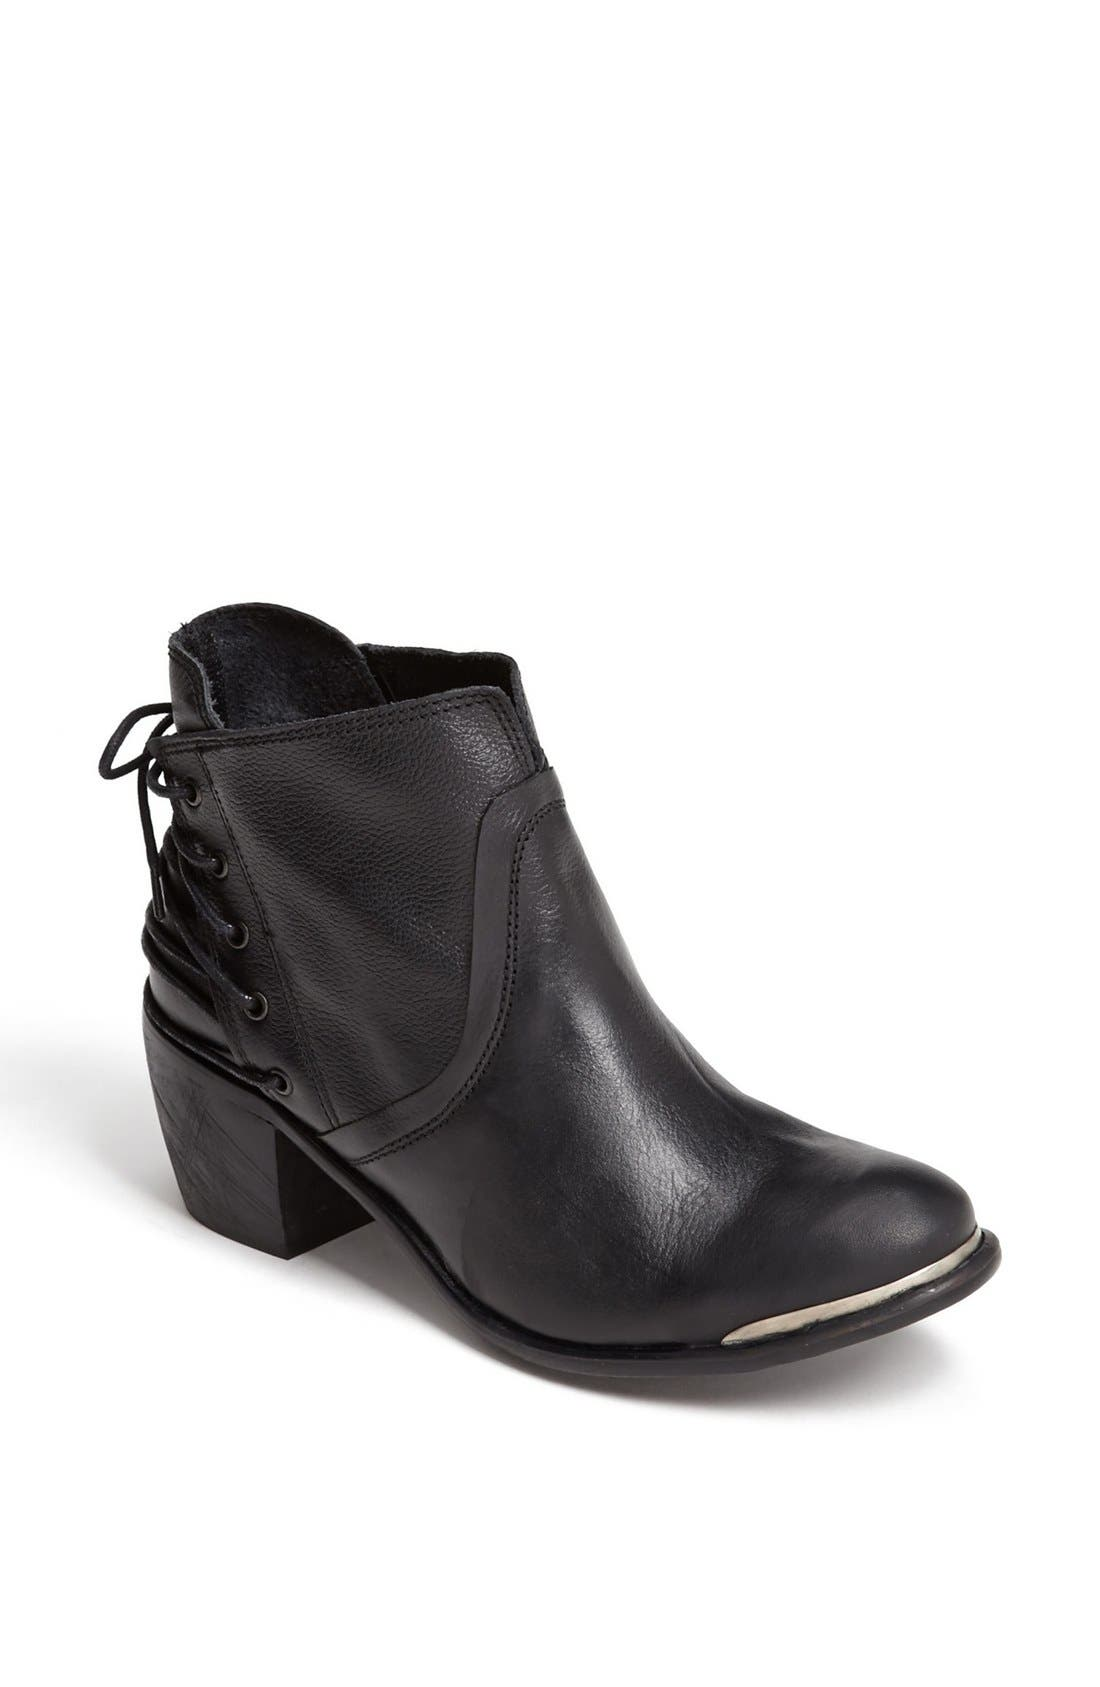 SIXTYSEVEN, 'Blake' Bootie, Main thumbnail 1, color, 001